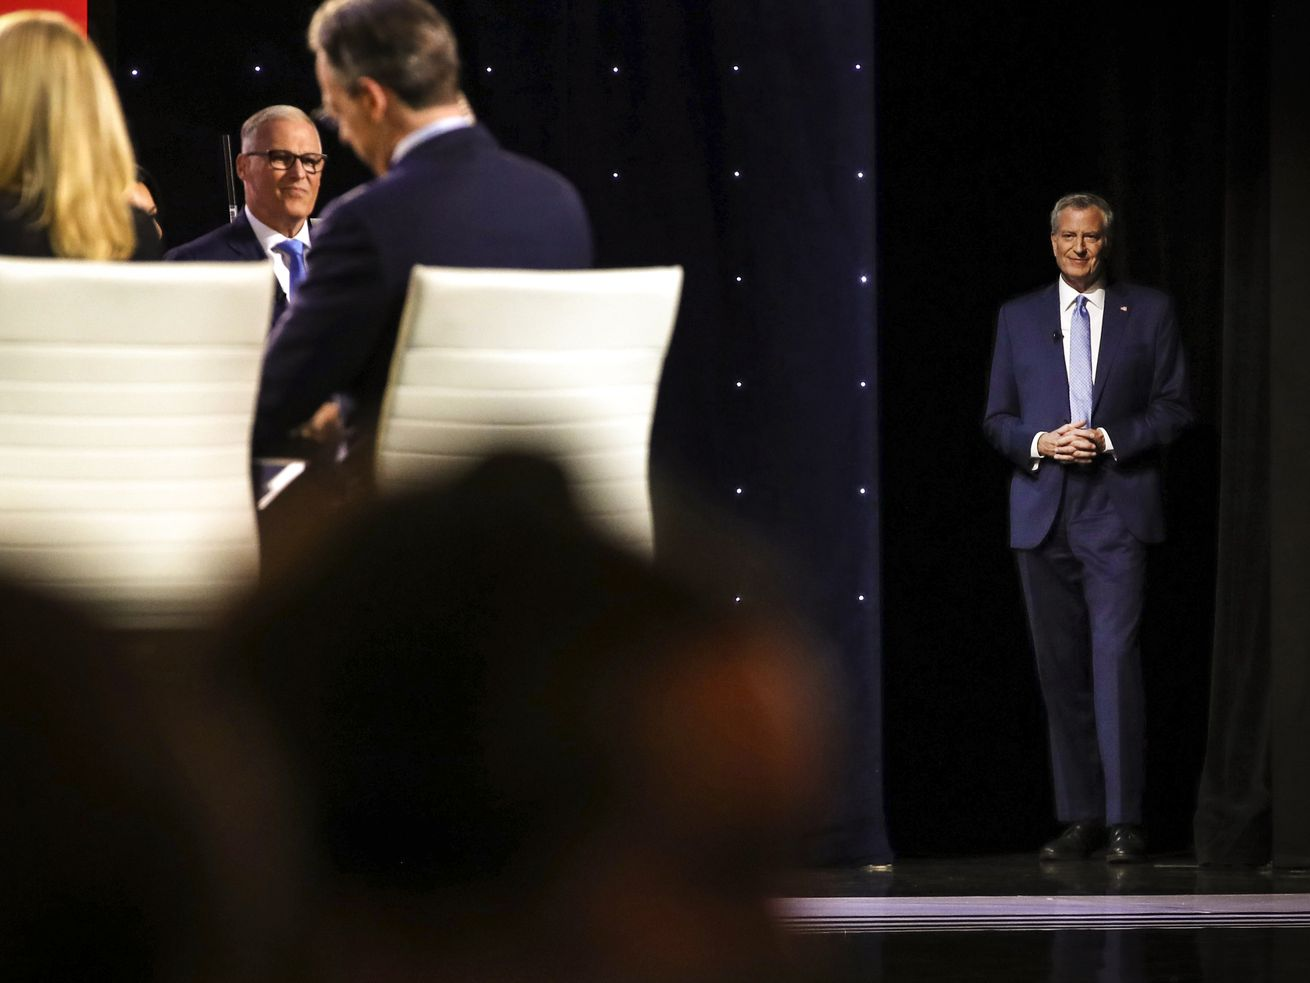 Democratic presidential candidate New York City Mayor Bill De Blasio takes the stage at the Democratic Presidential Debate on July 31, 2019.